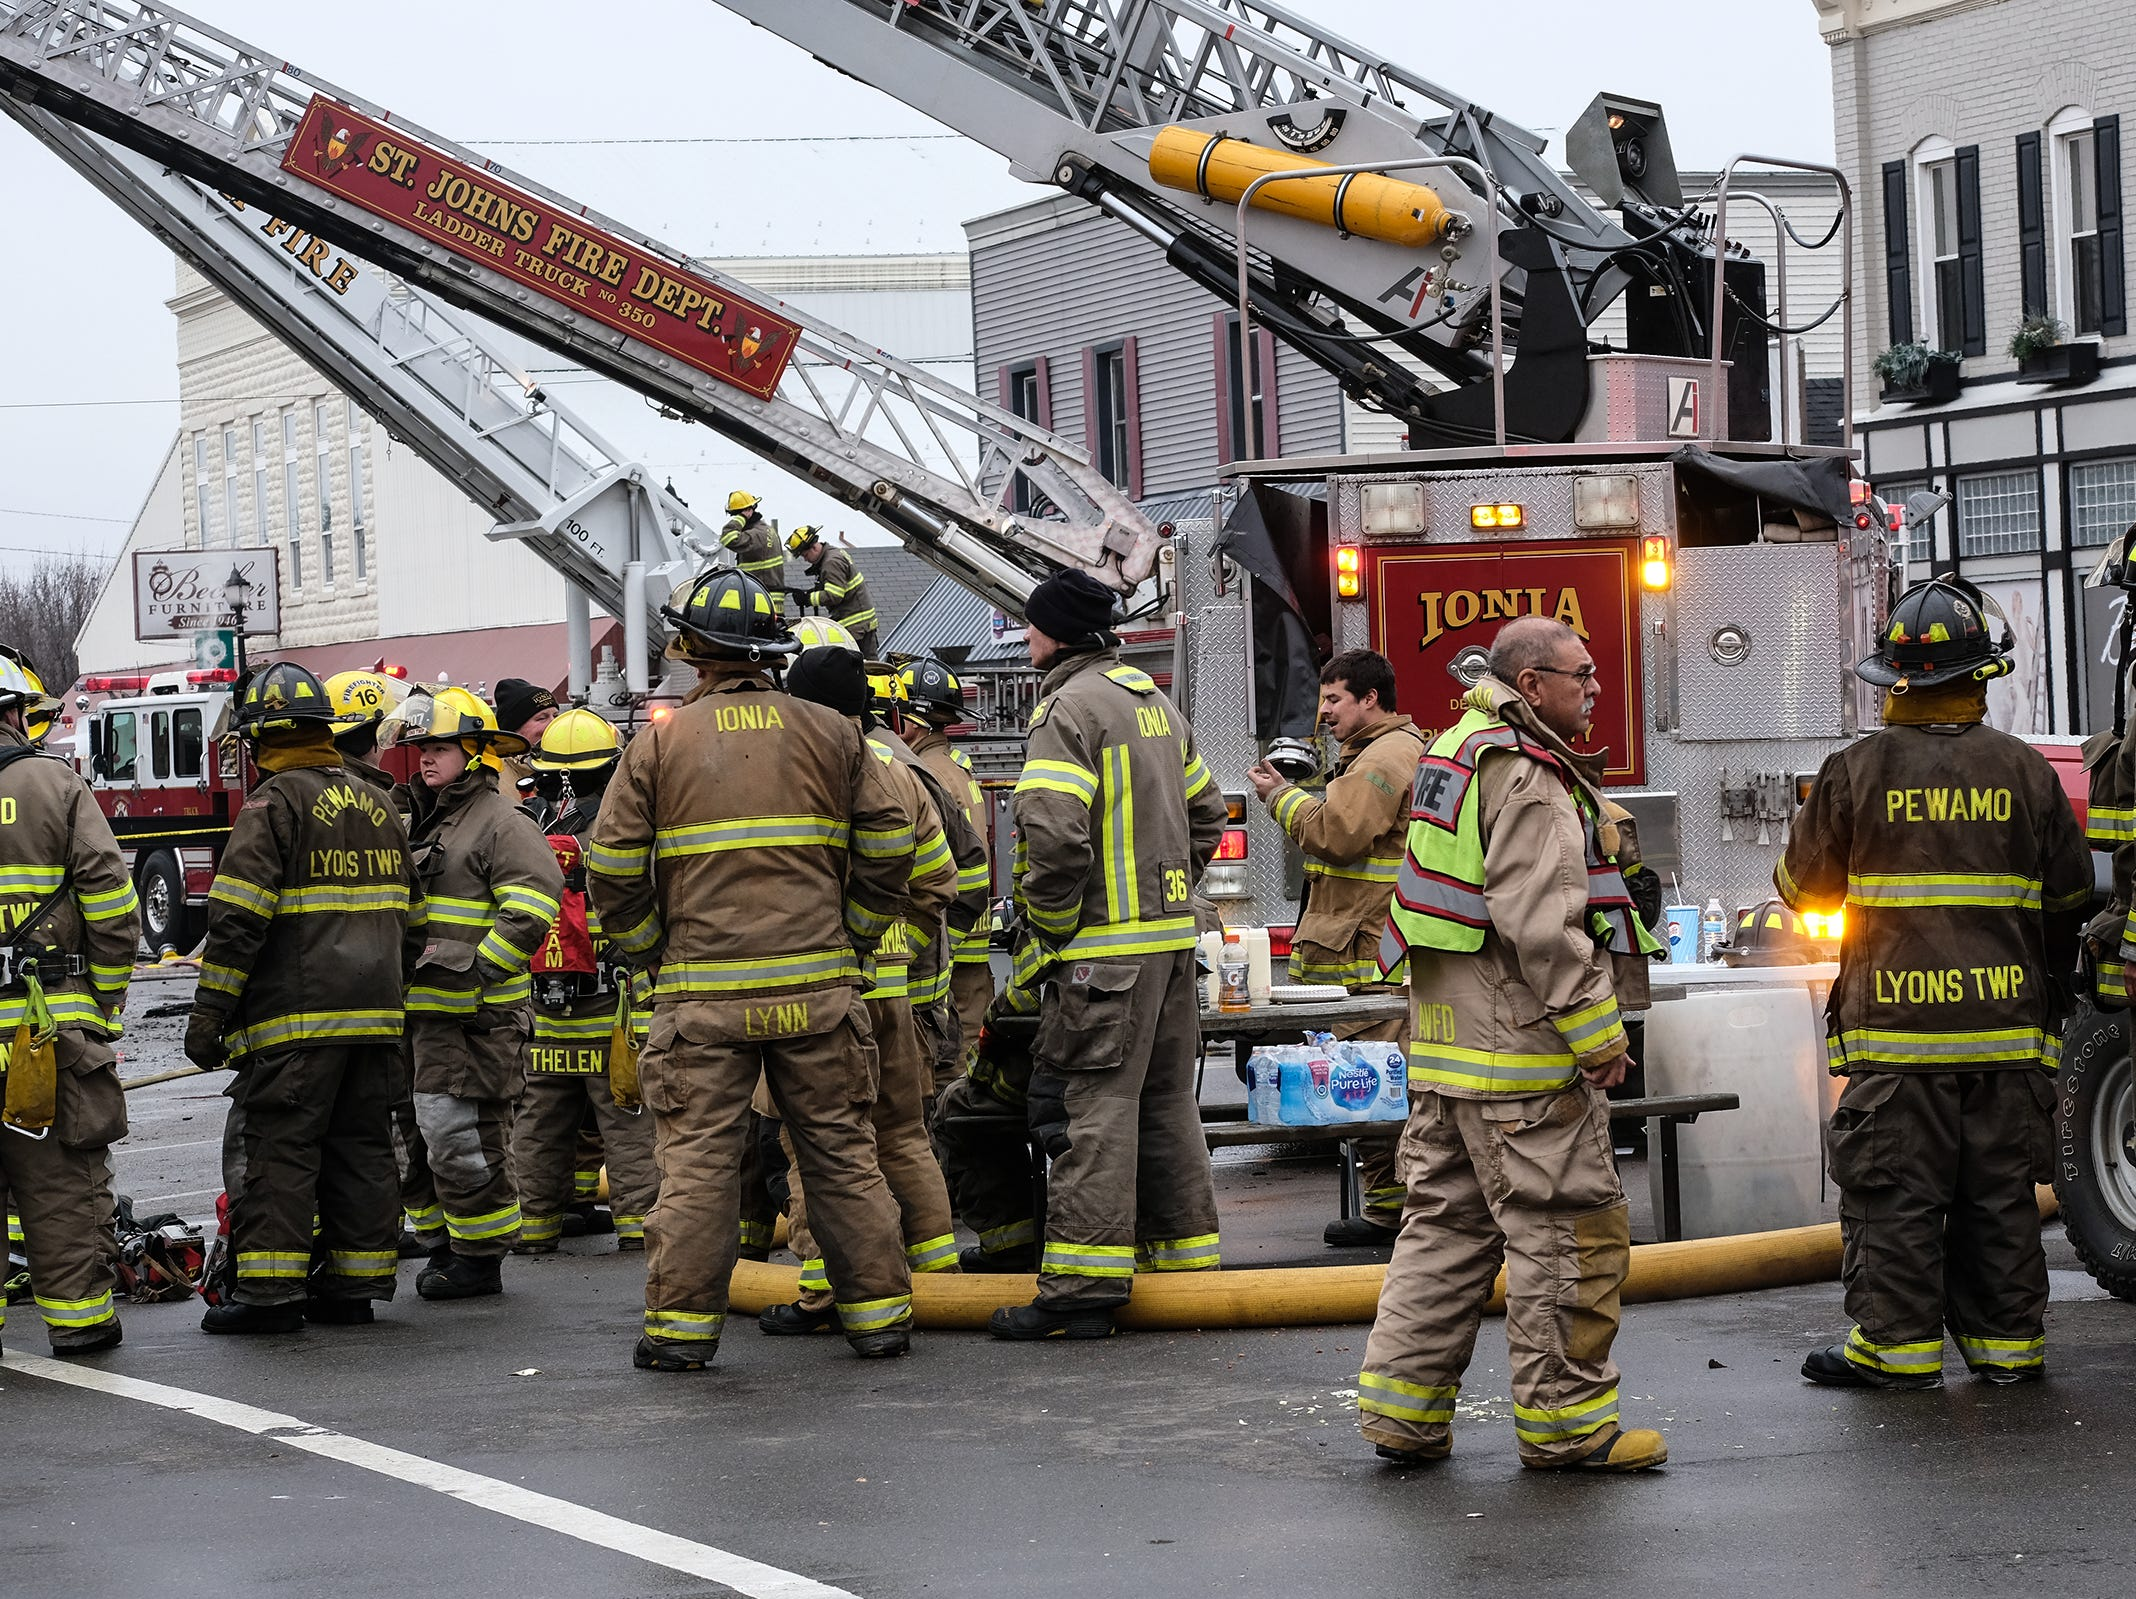 Firefighters from several municipalities work to extinguish a fire in downtown Fowler Saturday, Dec. 15, 2018.